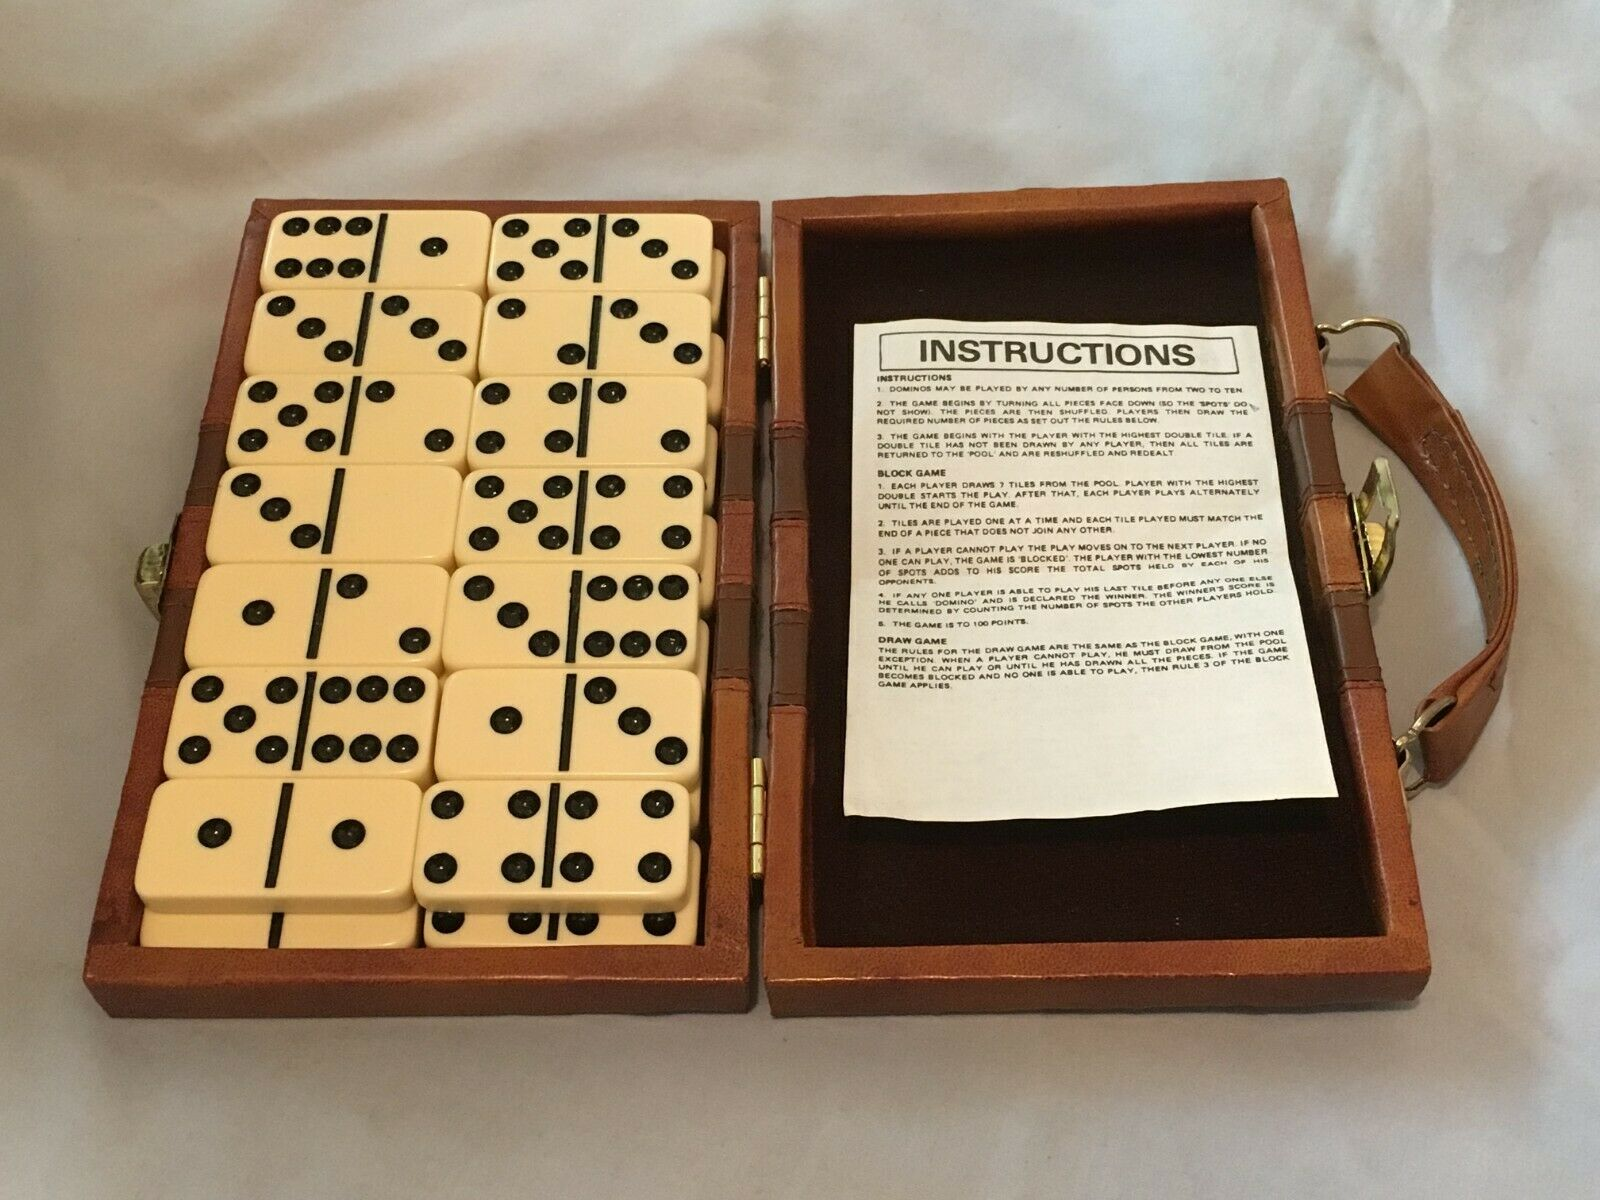 Vintage Double Six Domino Set With Faux Brown Leather Case and Instructions